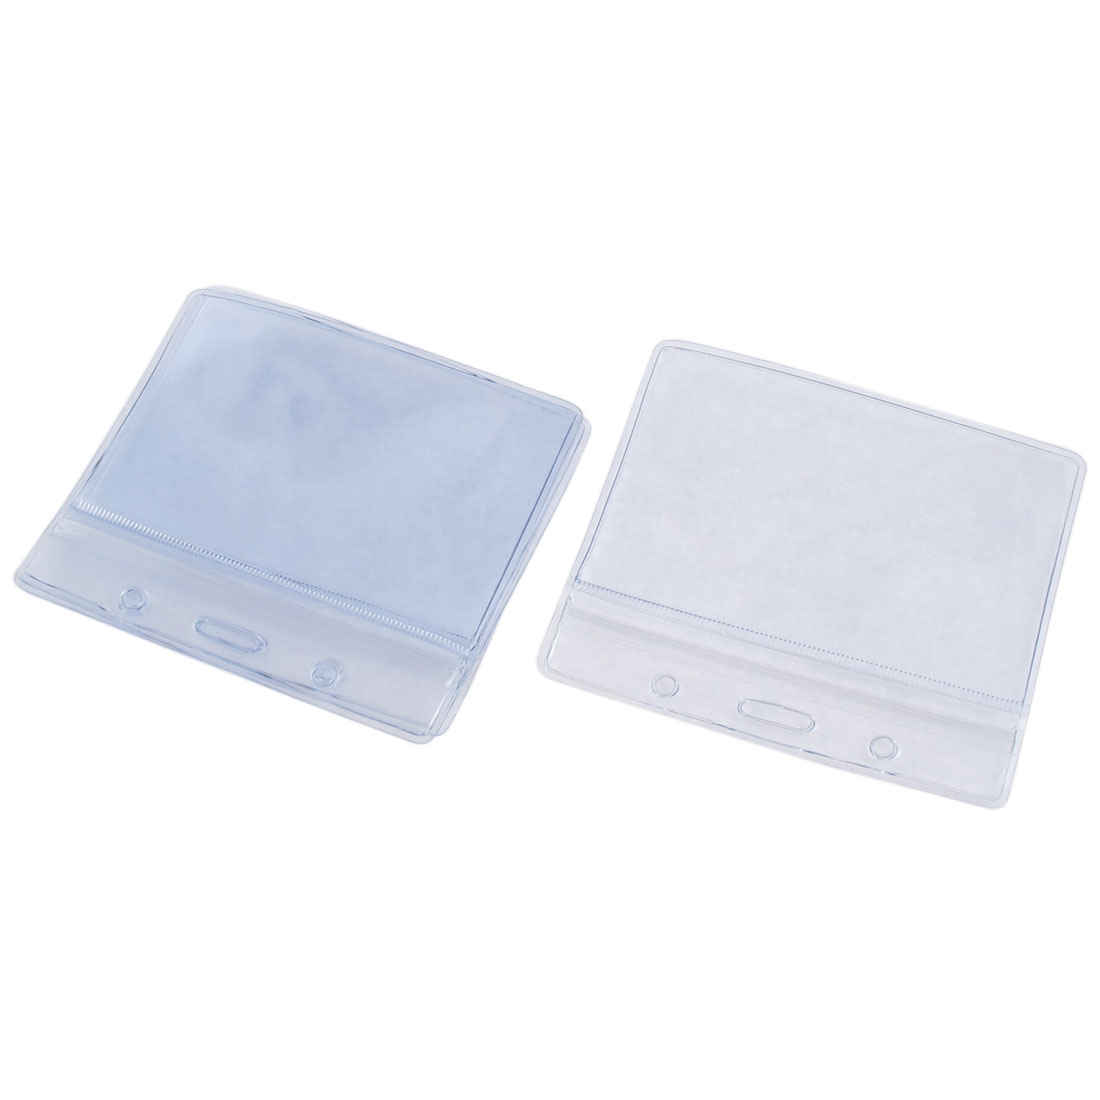 Transparent Soft Plastic Horizontal Badge Pocket Self Seal ID Card Holder 4 Pcs